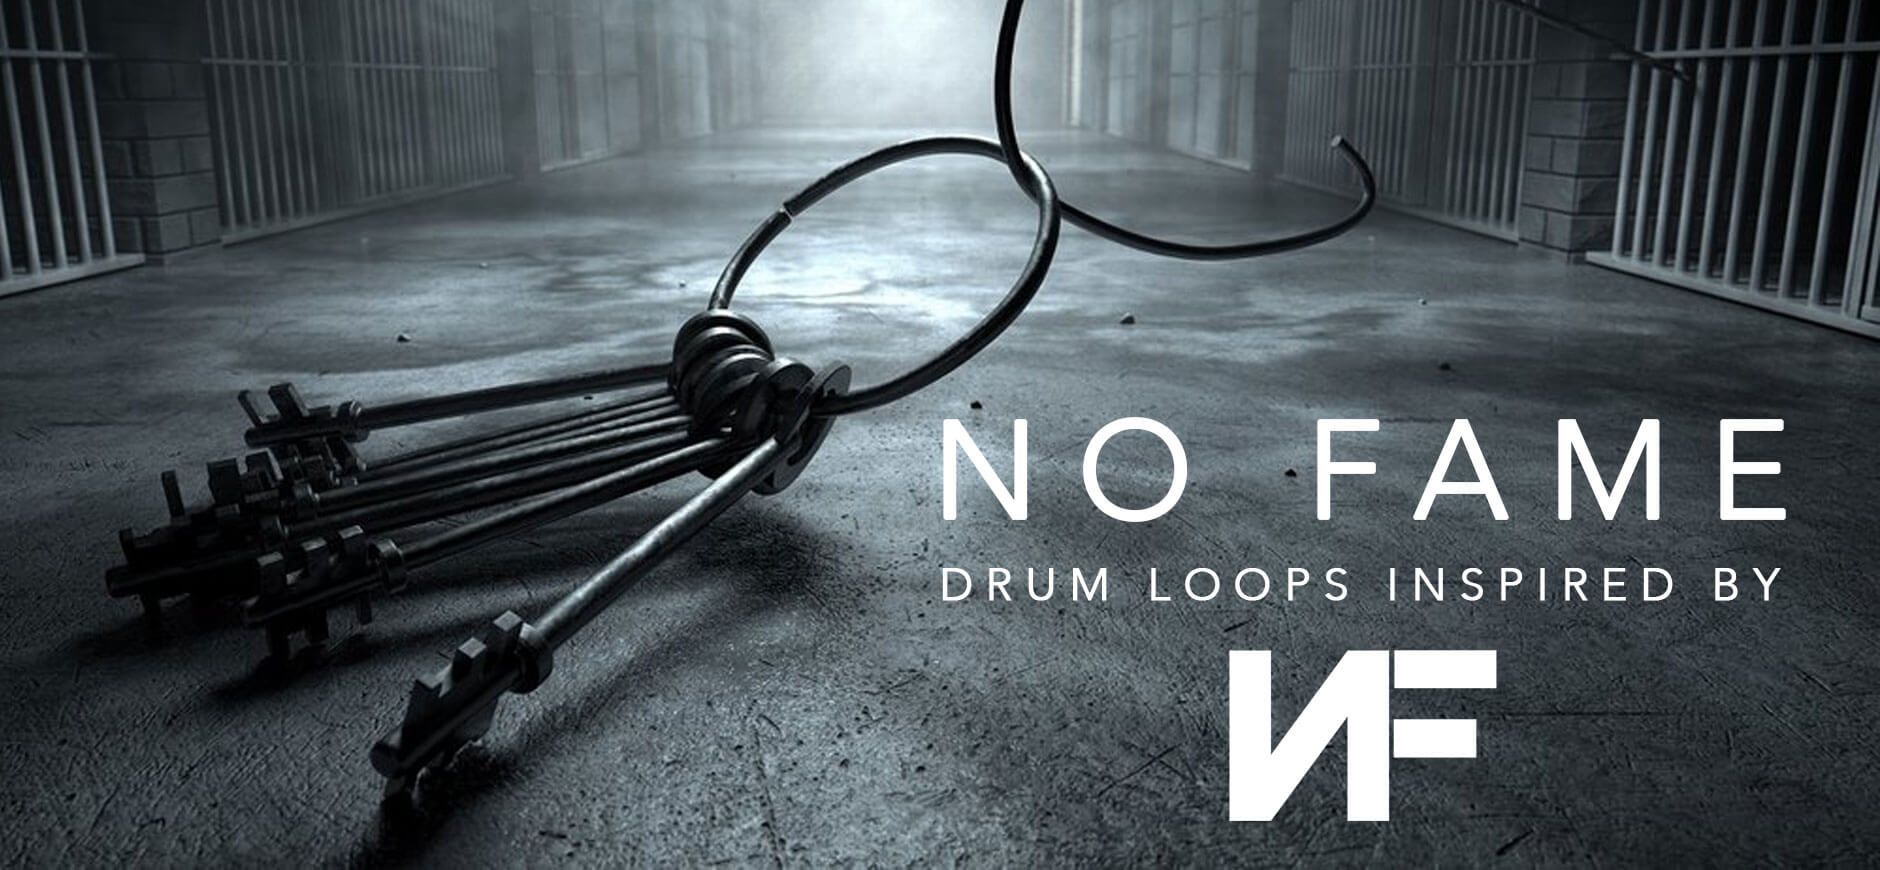 No Name Drum Loops Kit Inspired by NF